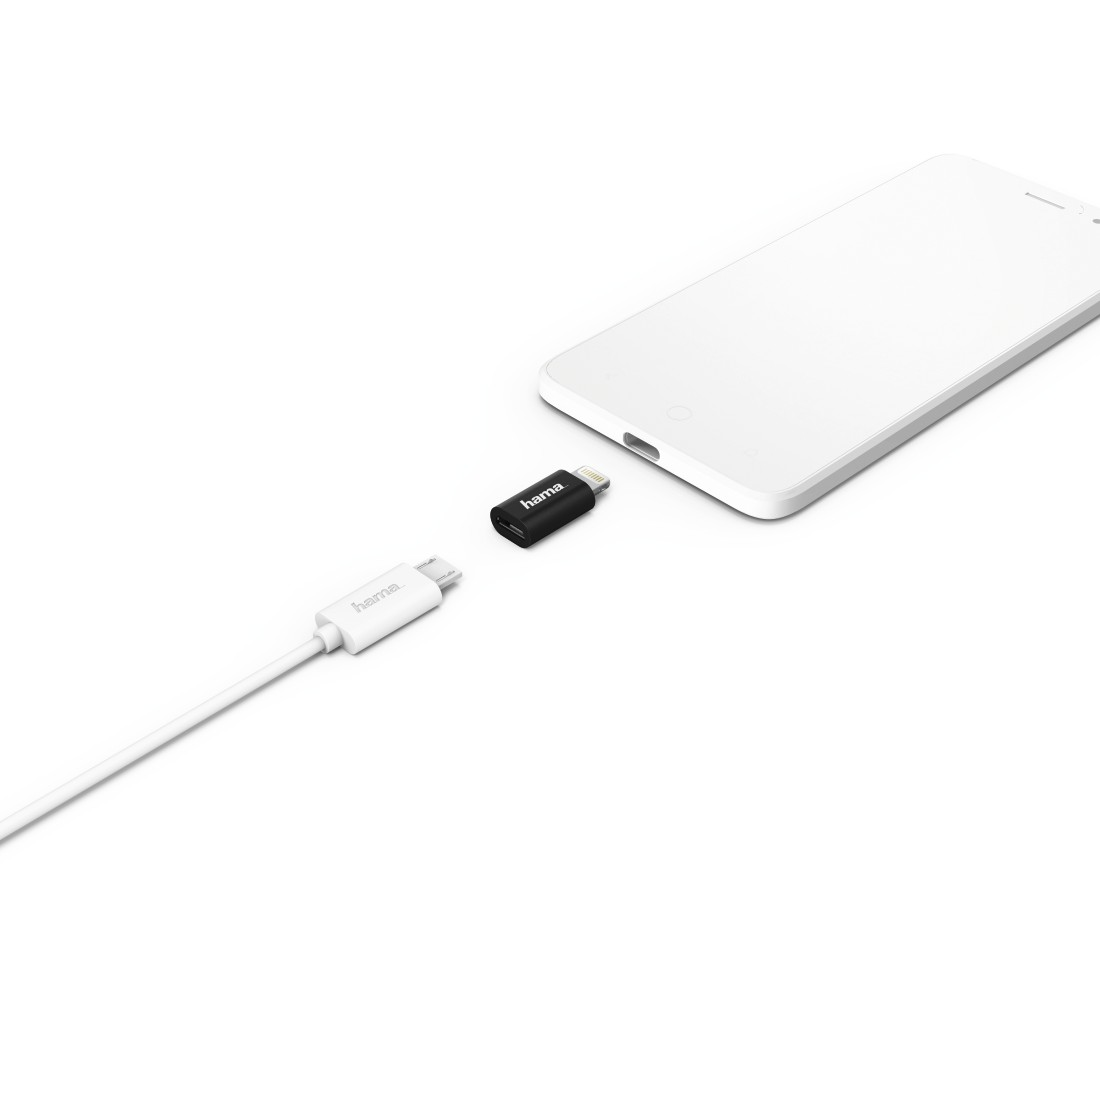 Apple Lightning To Micro Usb Adapter Md820zm A Adapter Kit Apple Dell 45w Ac Adapter Uk Power Adapter Xiaomi Mdy 08 Eo: 00178400 Hama Micro USB Adapter To Apple Lightning Plug